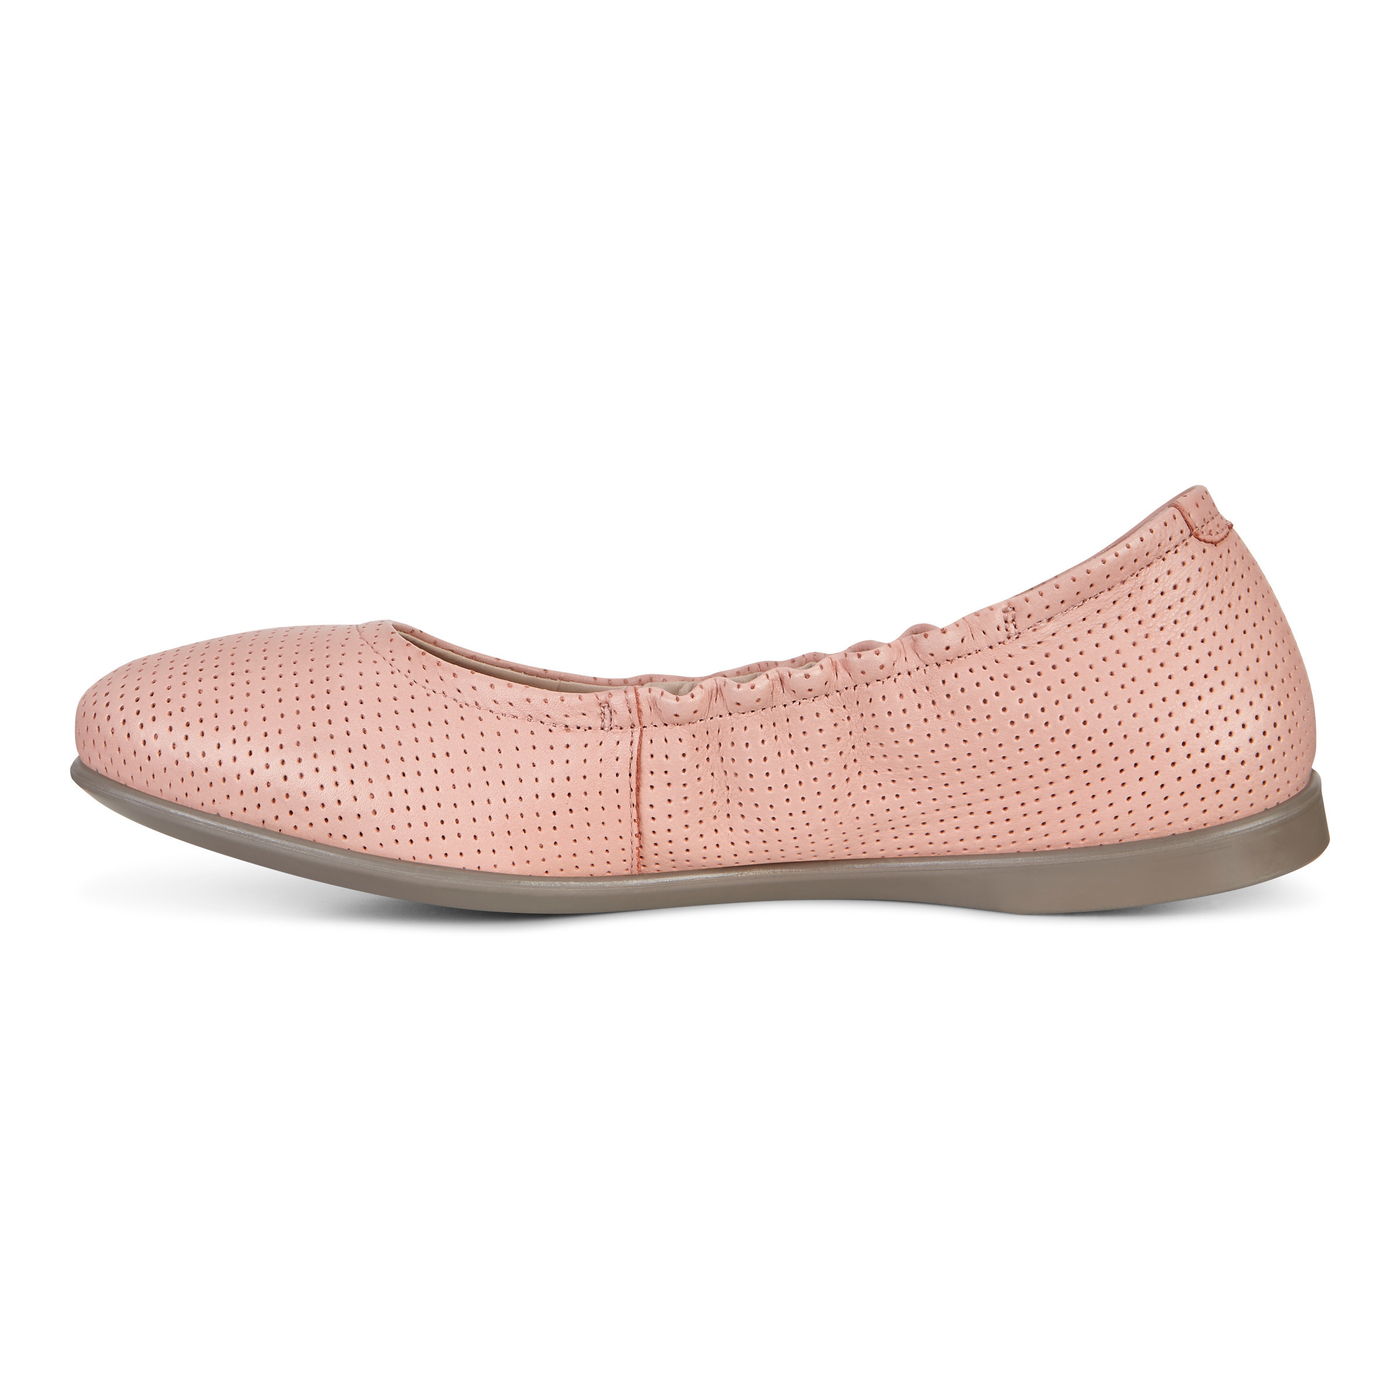 ECCO Incise Enchant Ballerina